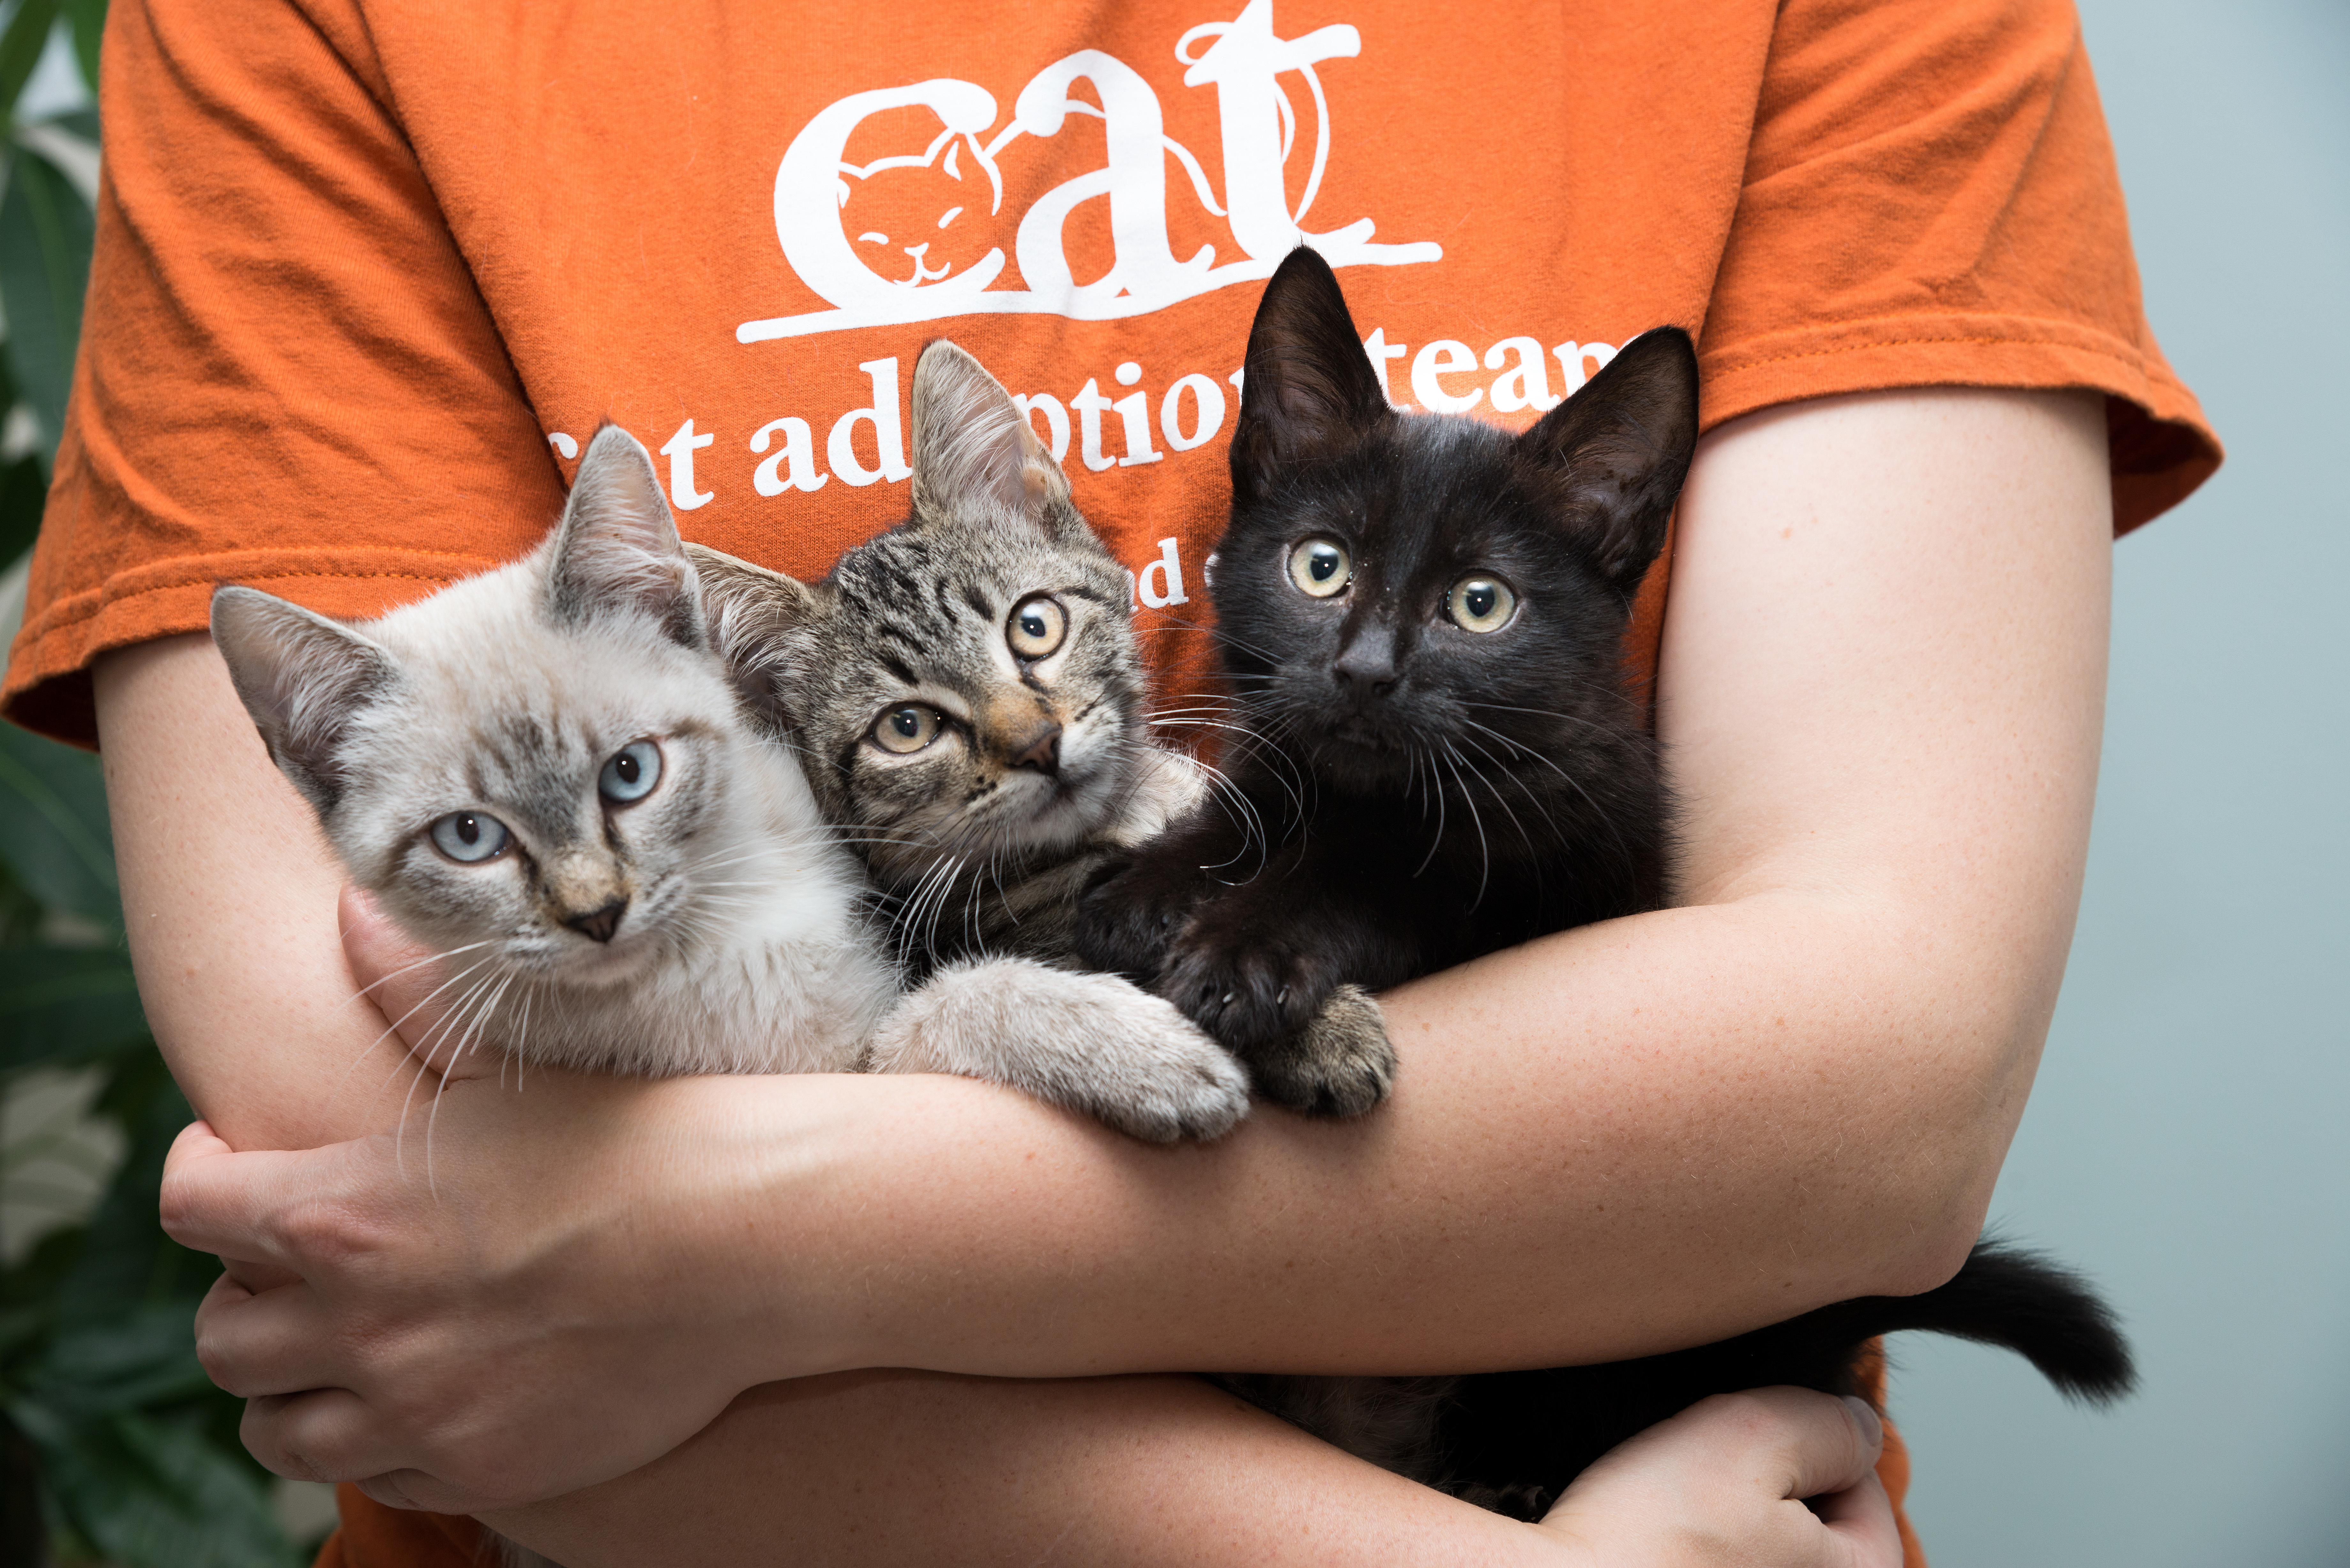 We find homes for 3,000+ cats & kittens annually